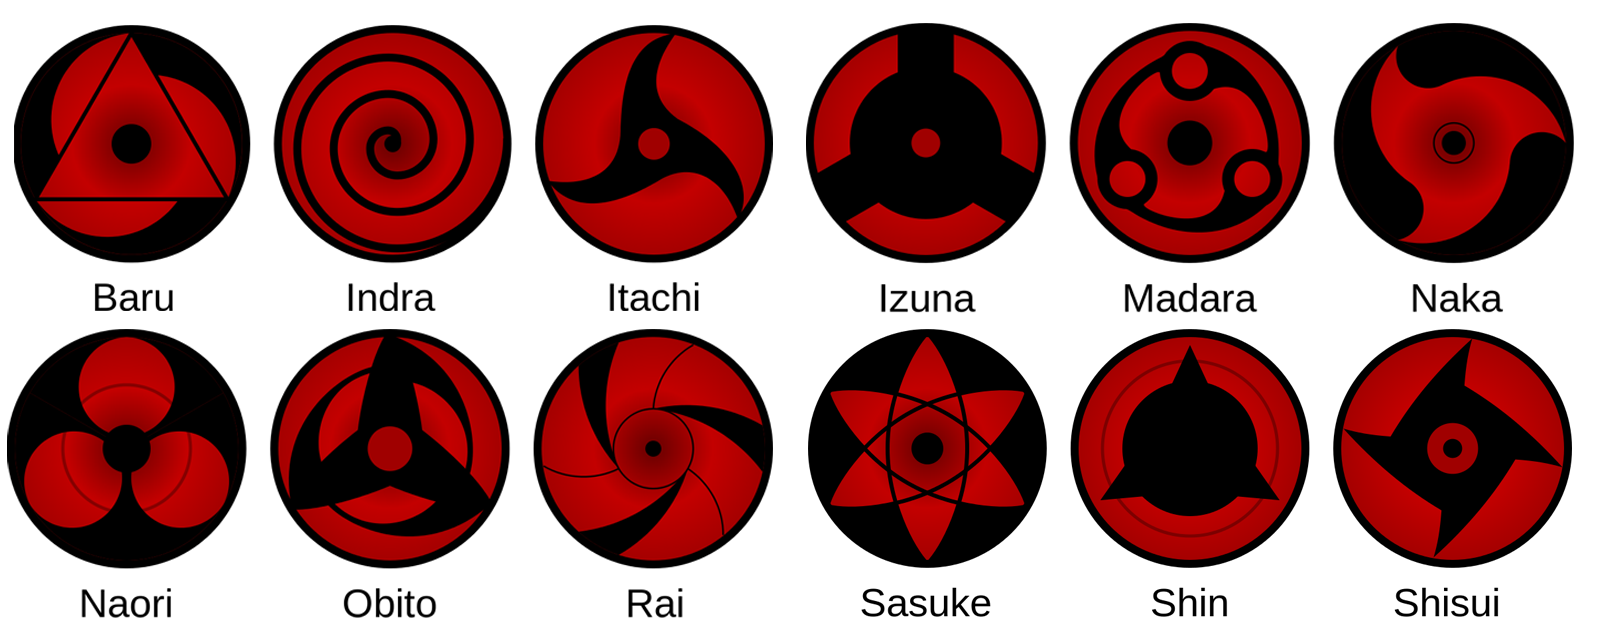 all mangekyou sharingan